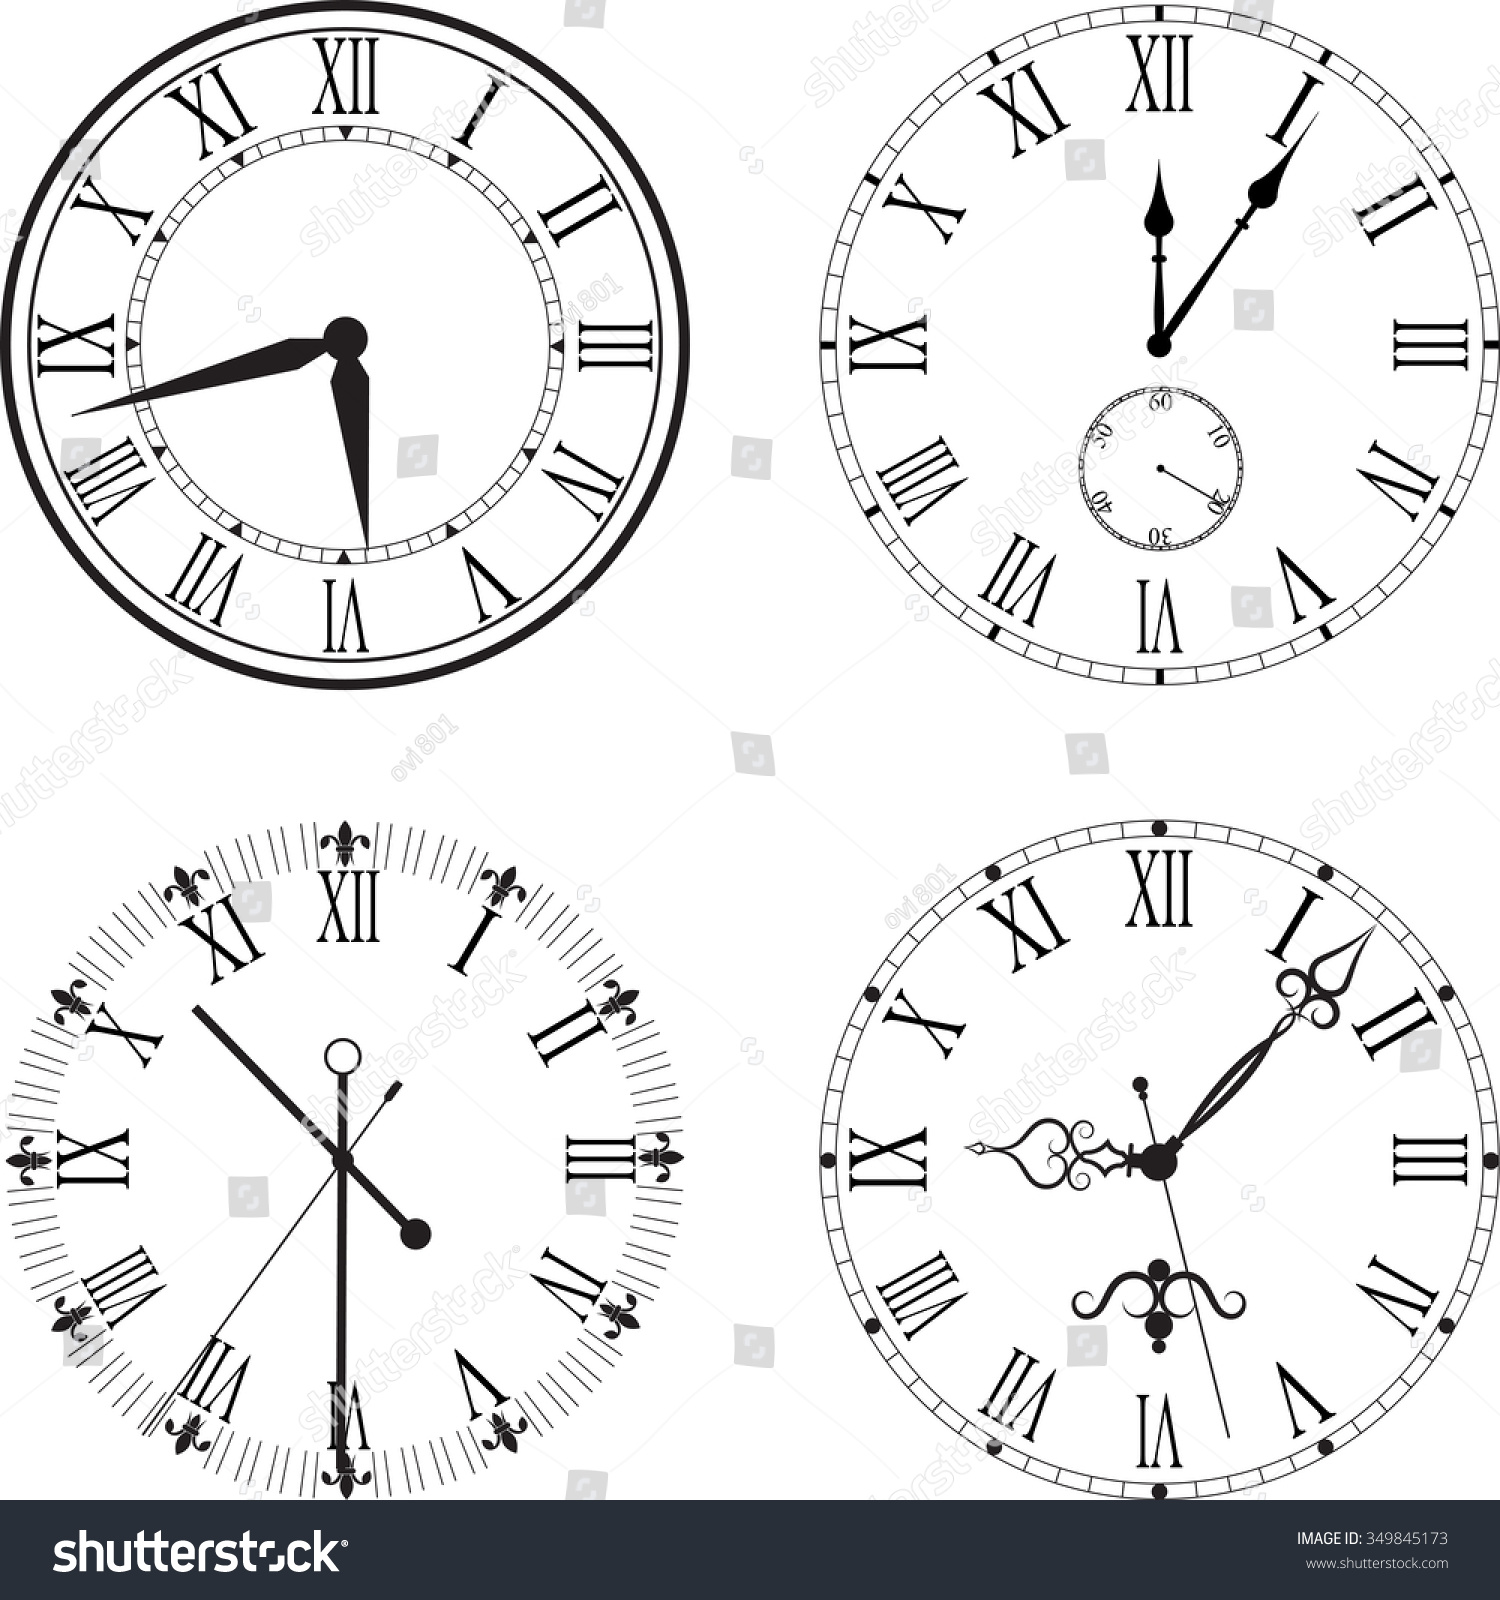 Vintage Clock Face With Roman Numerals Stock Vector Illustration Shutterstock